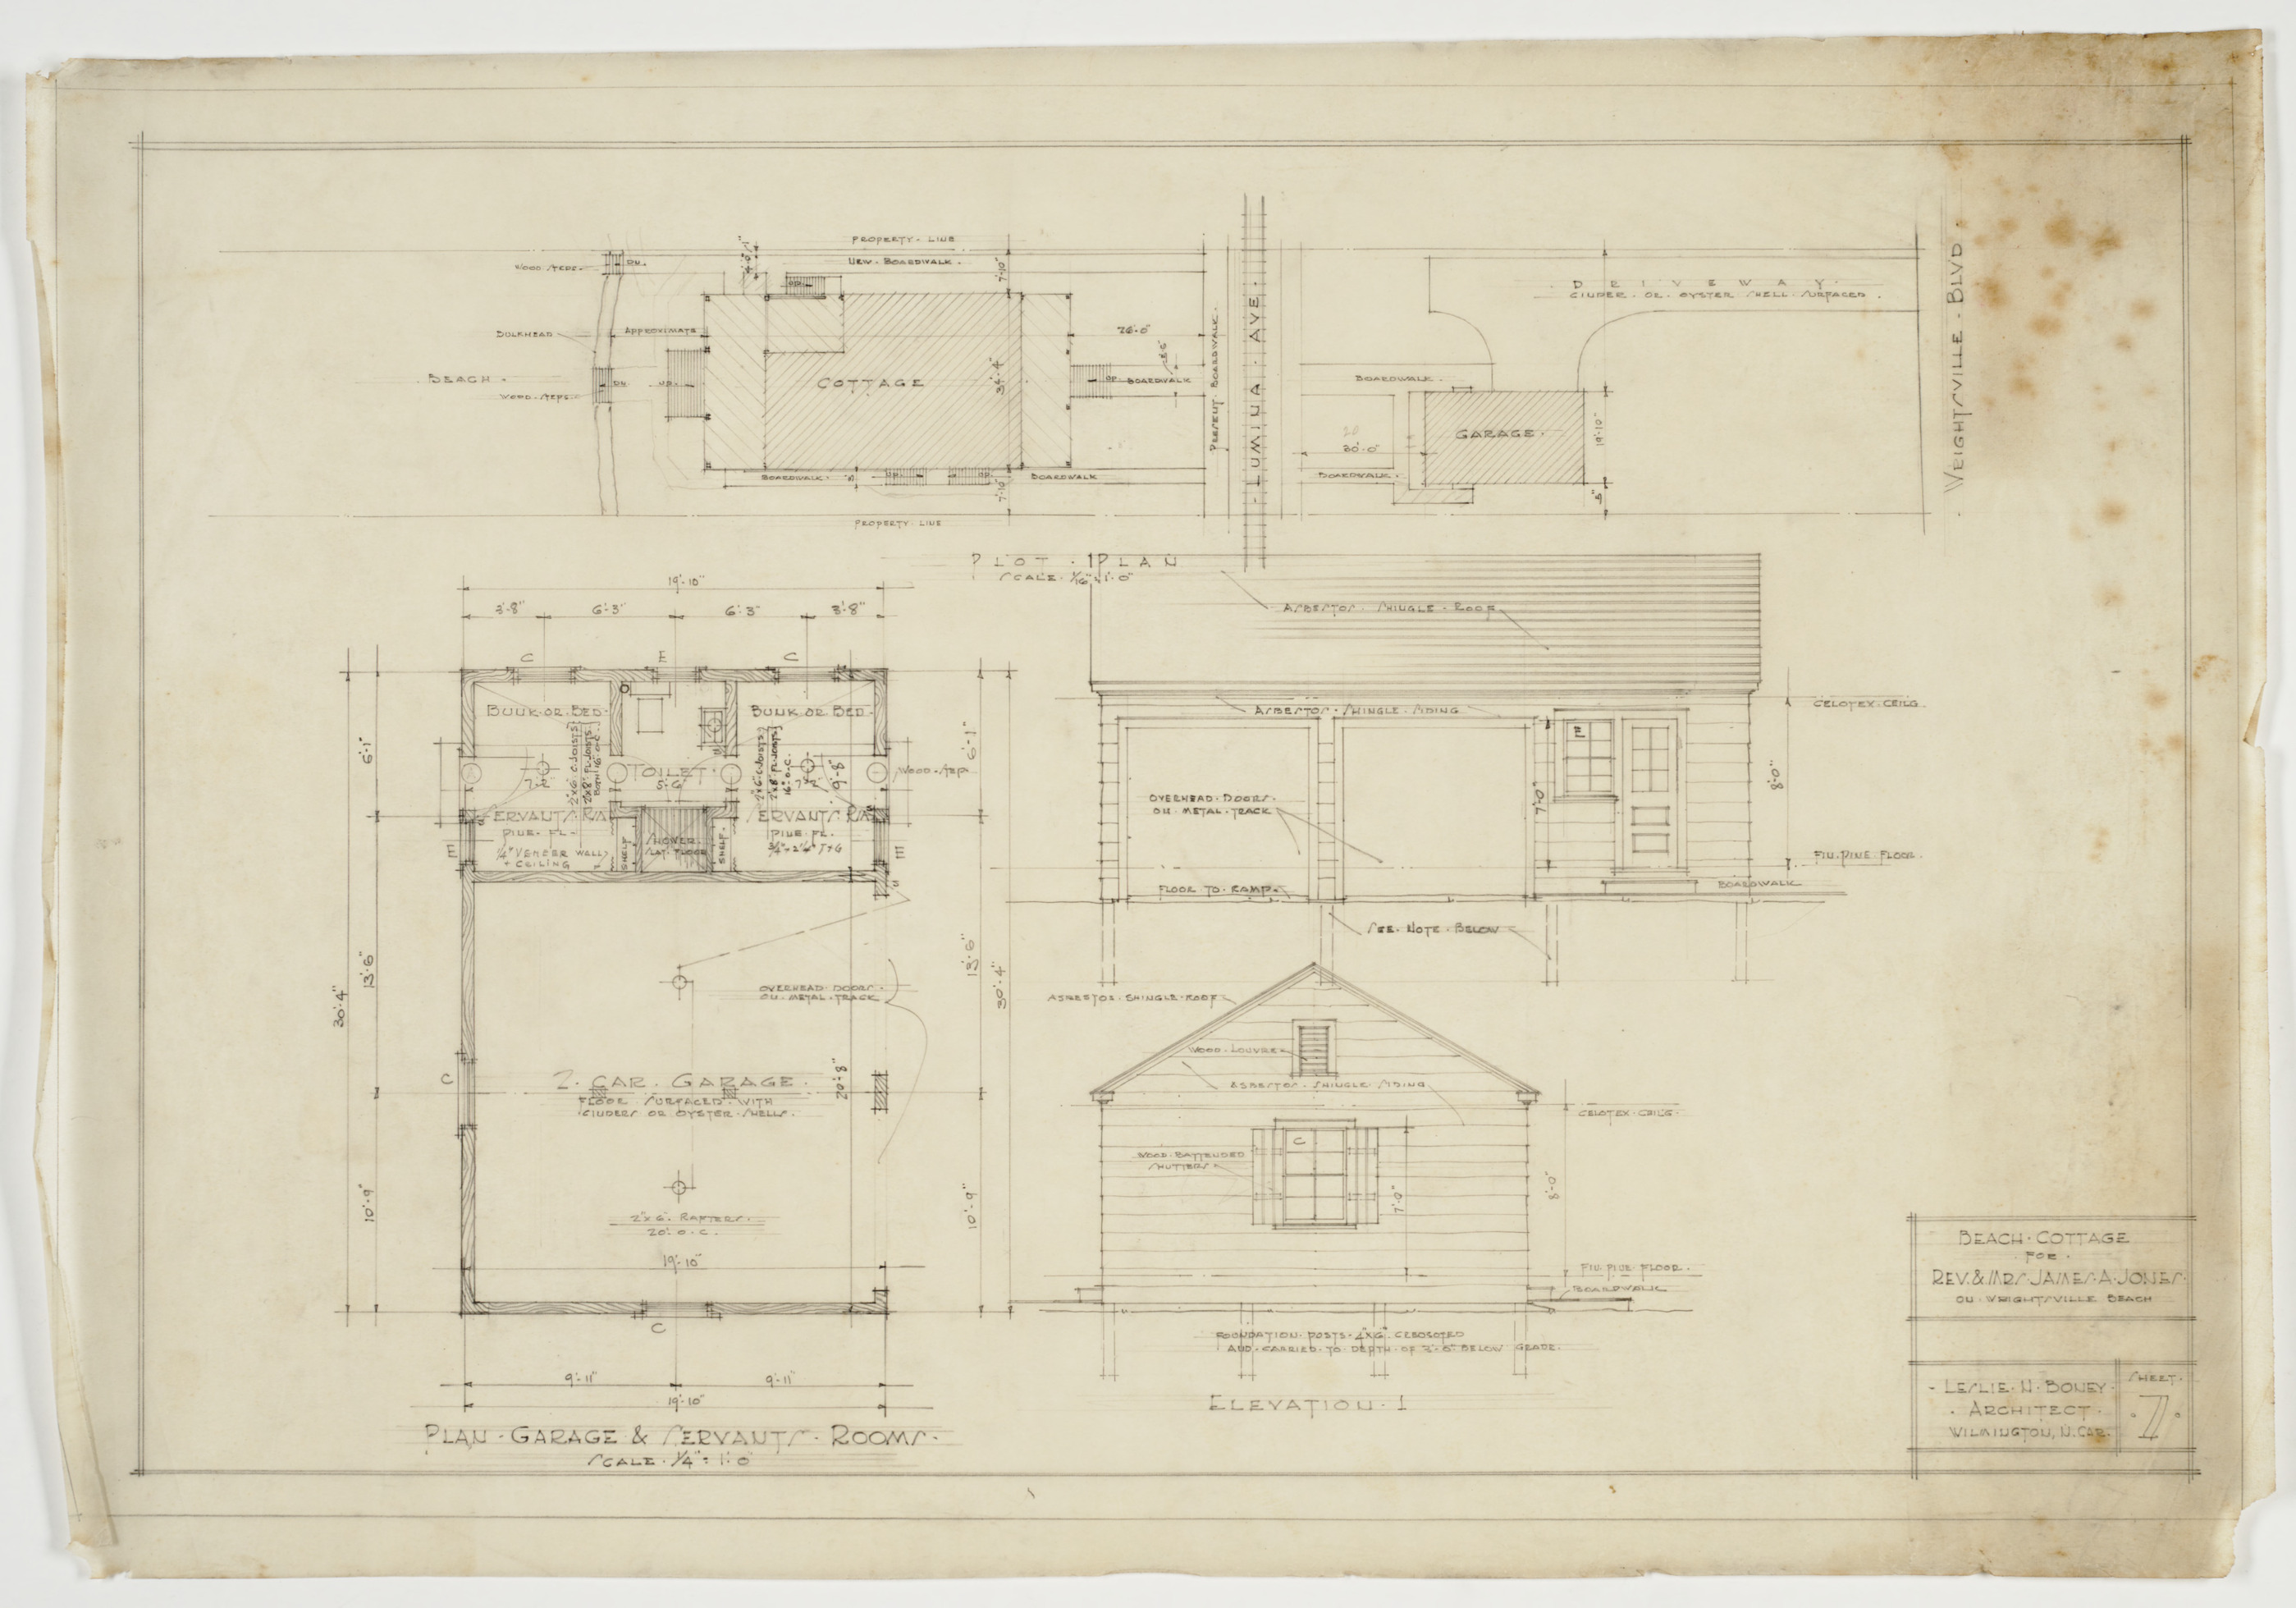 Floor plan site plan and elevations for garage and Servant quarters floor plans